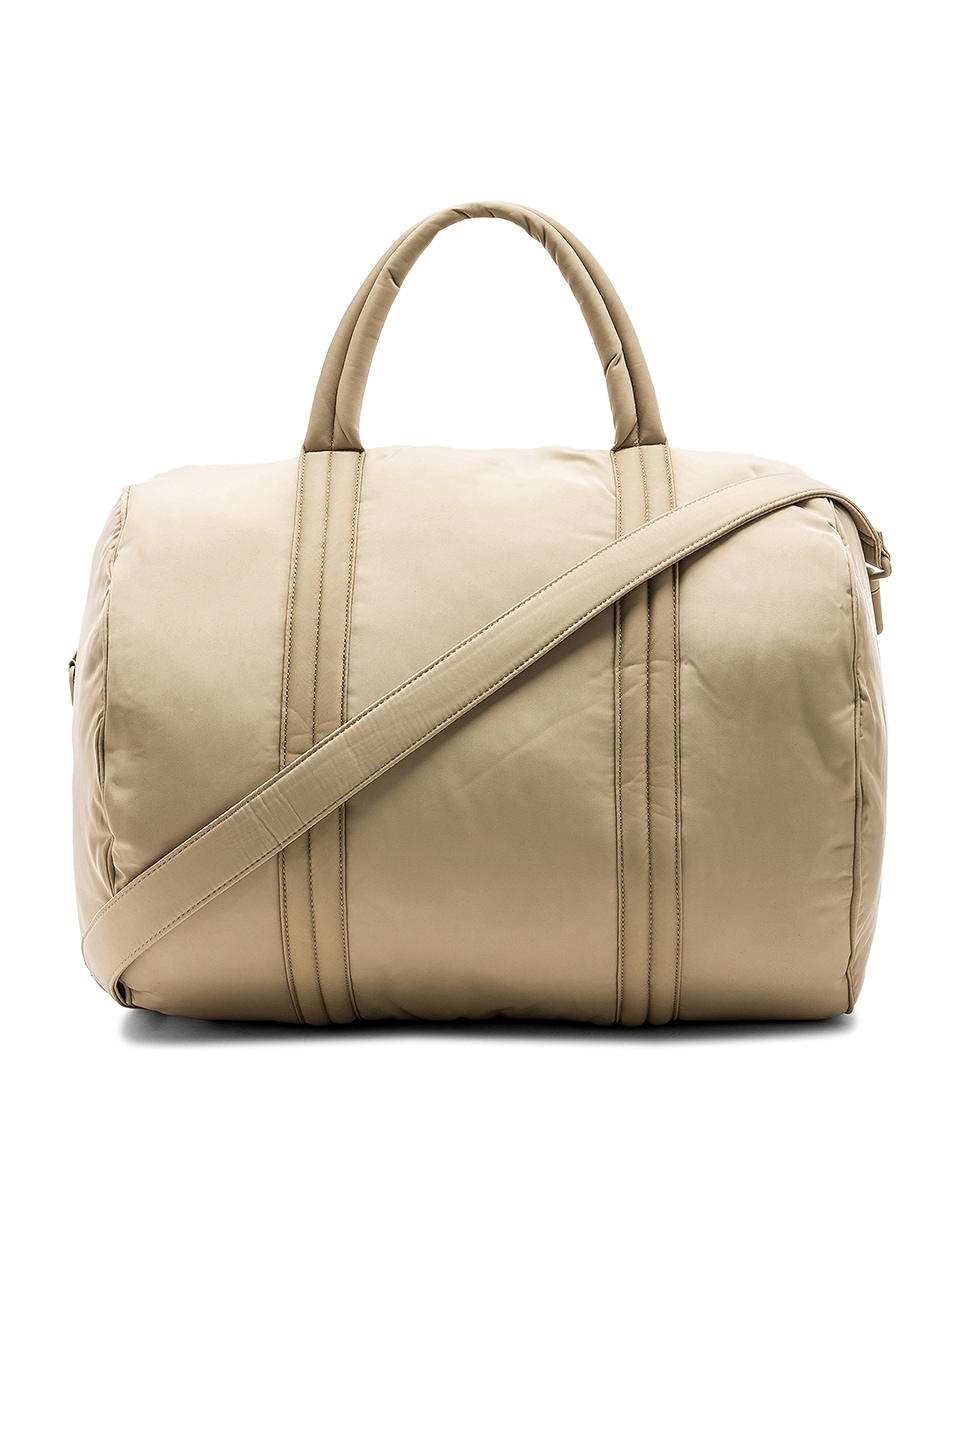 dfd13b928 YEEZY Season 6 Gym Bag in Taupe